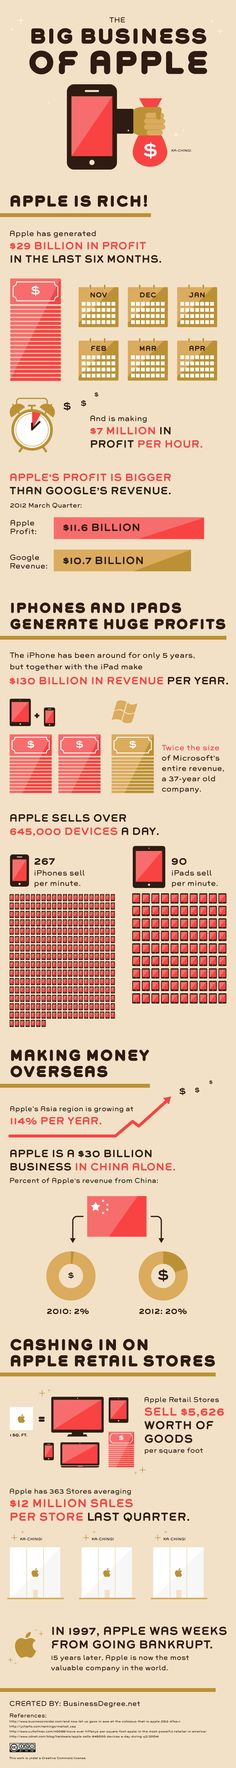 The economics behind Apple's success involve some astonishingly big numbers!